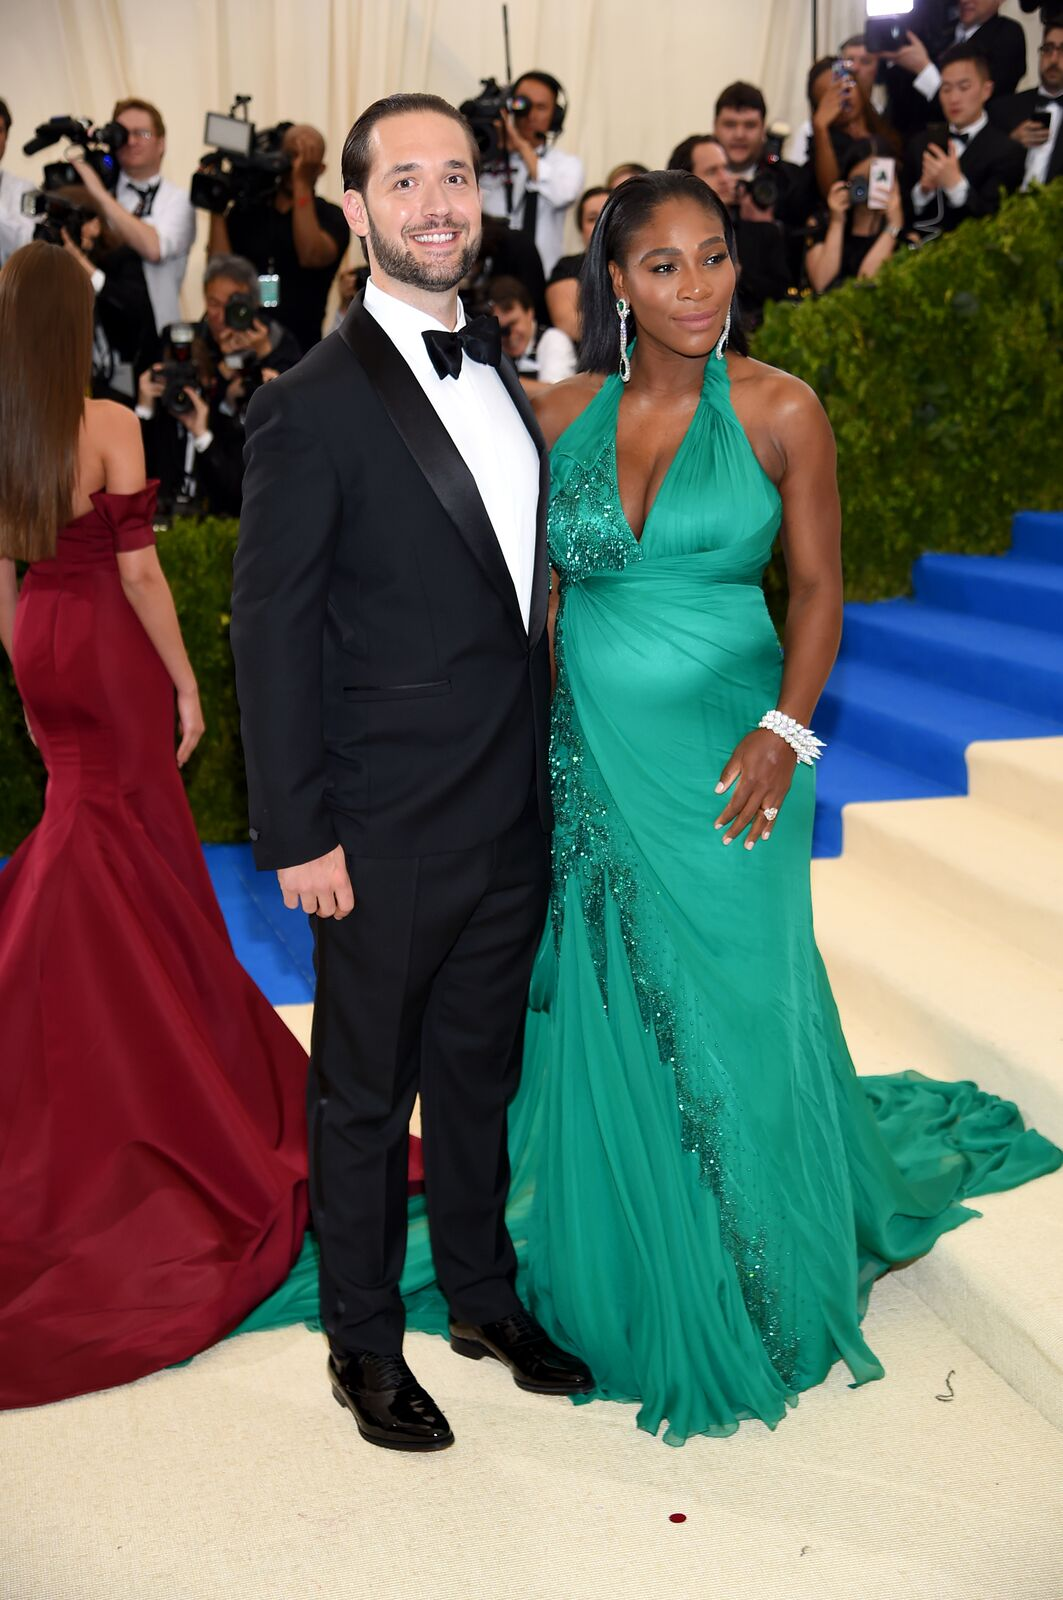 Alexis Ohanian and Serena Williams attend the Costume Institute Gala at Metropolitan Museum of Art on May 1, 2017. | Source: Getty Images